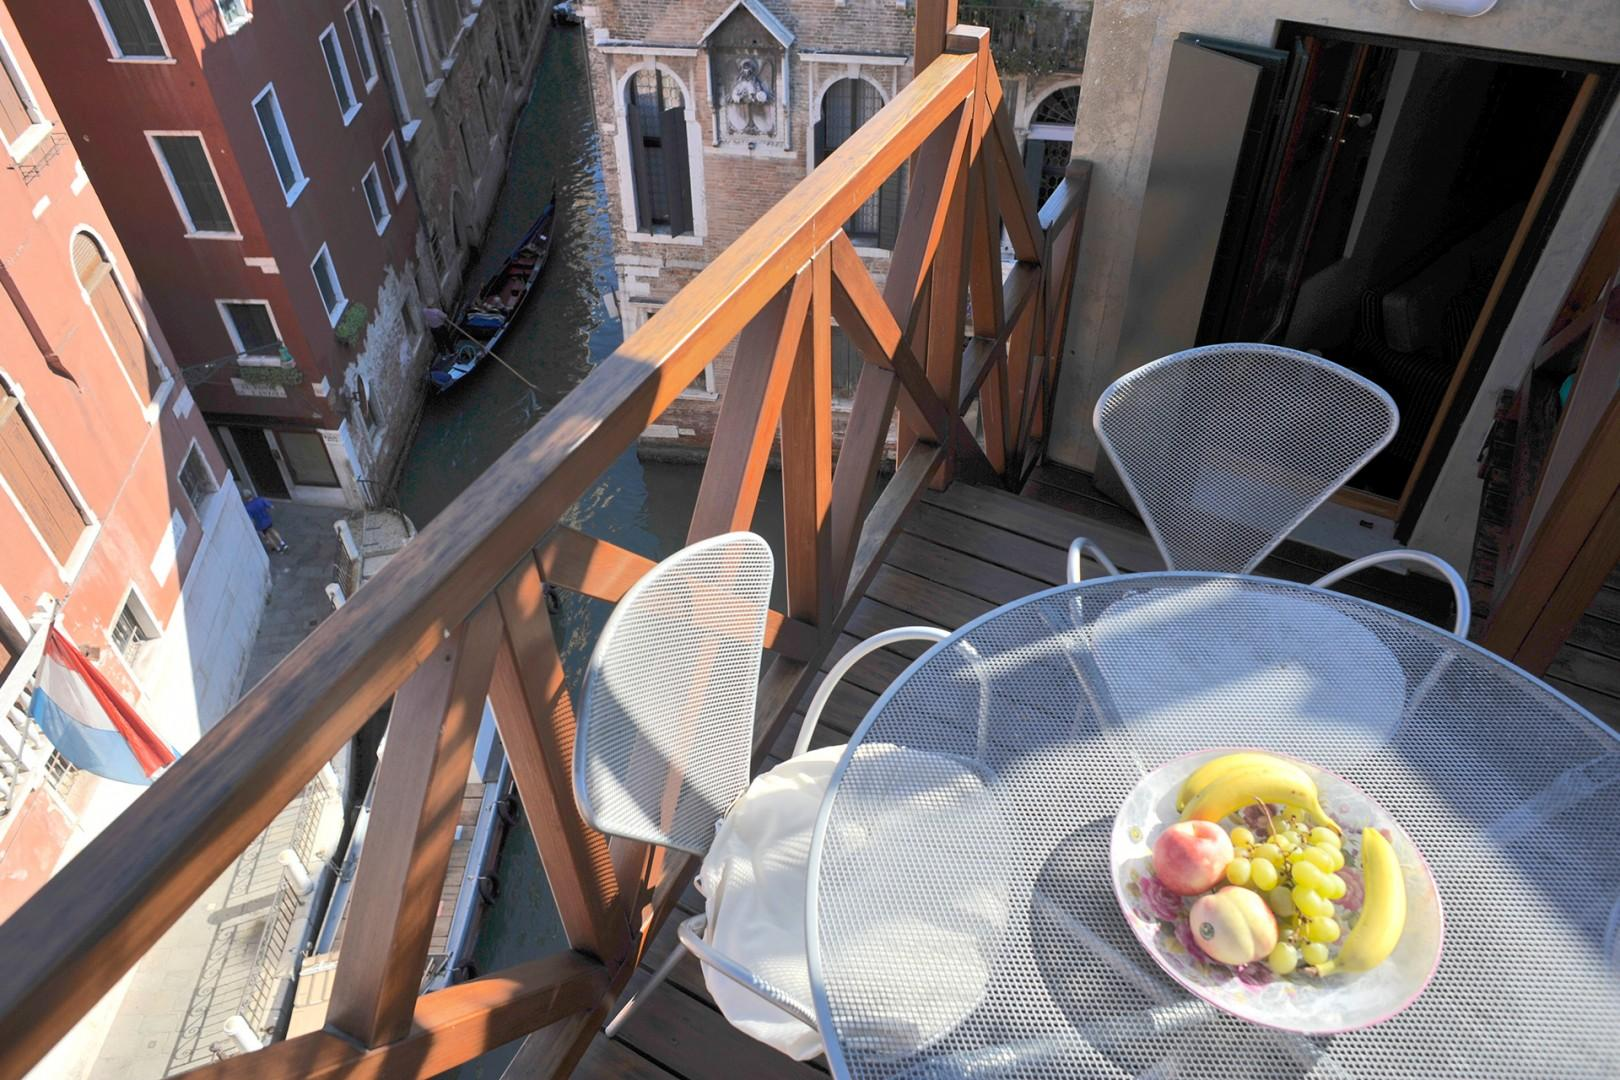 A table on the terrace welcomes dining al fresco while enjoying the view.